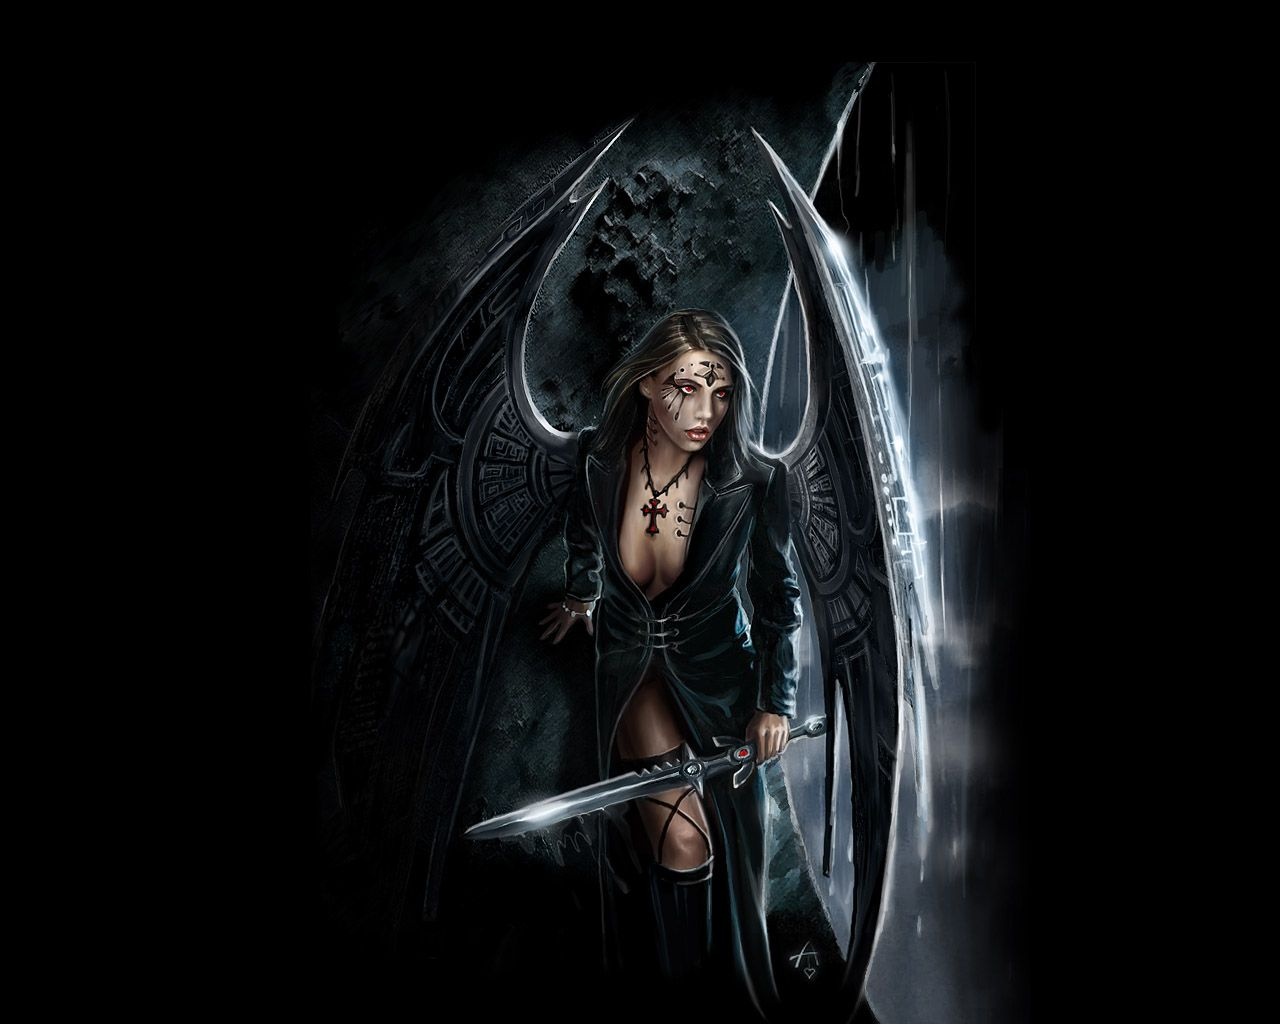 14 best the dark images on pinterest | dark art, dark angels and